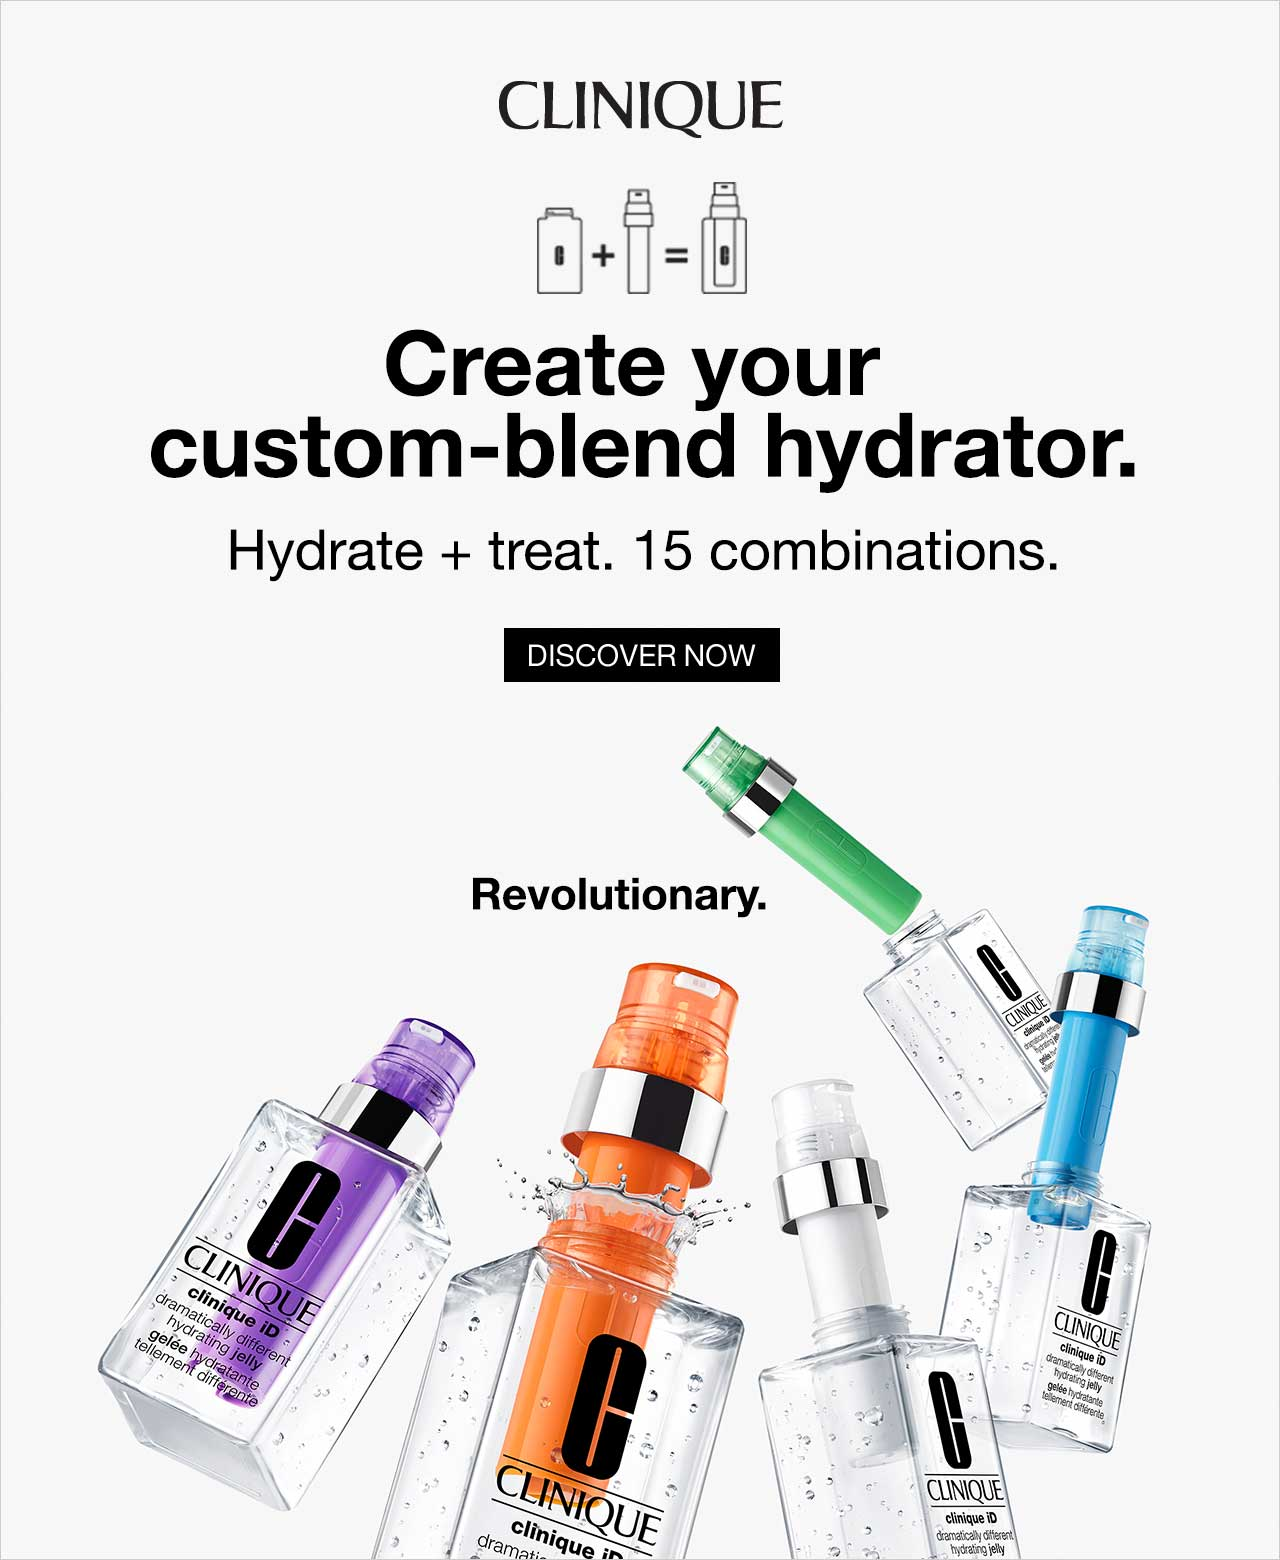 Clinique ID create your custom-blend hydrator. Hydrate + treat 15 combinations. Discover now